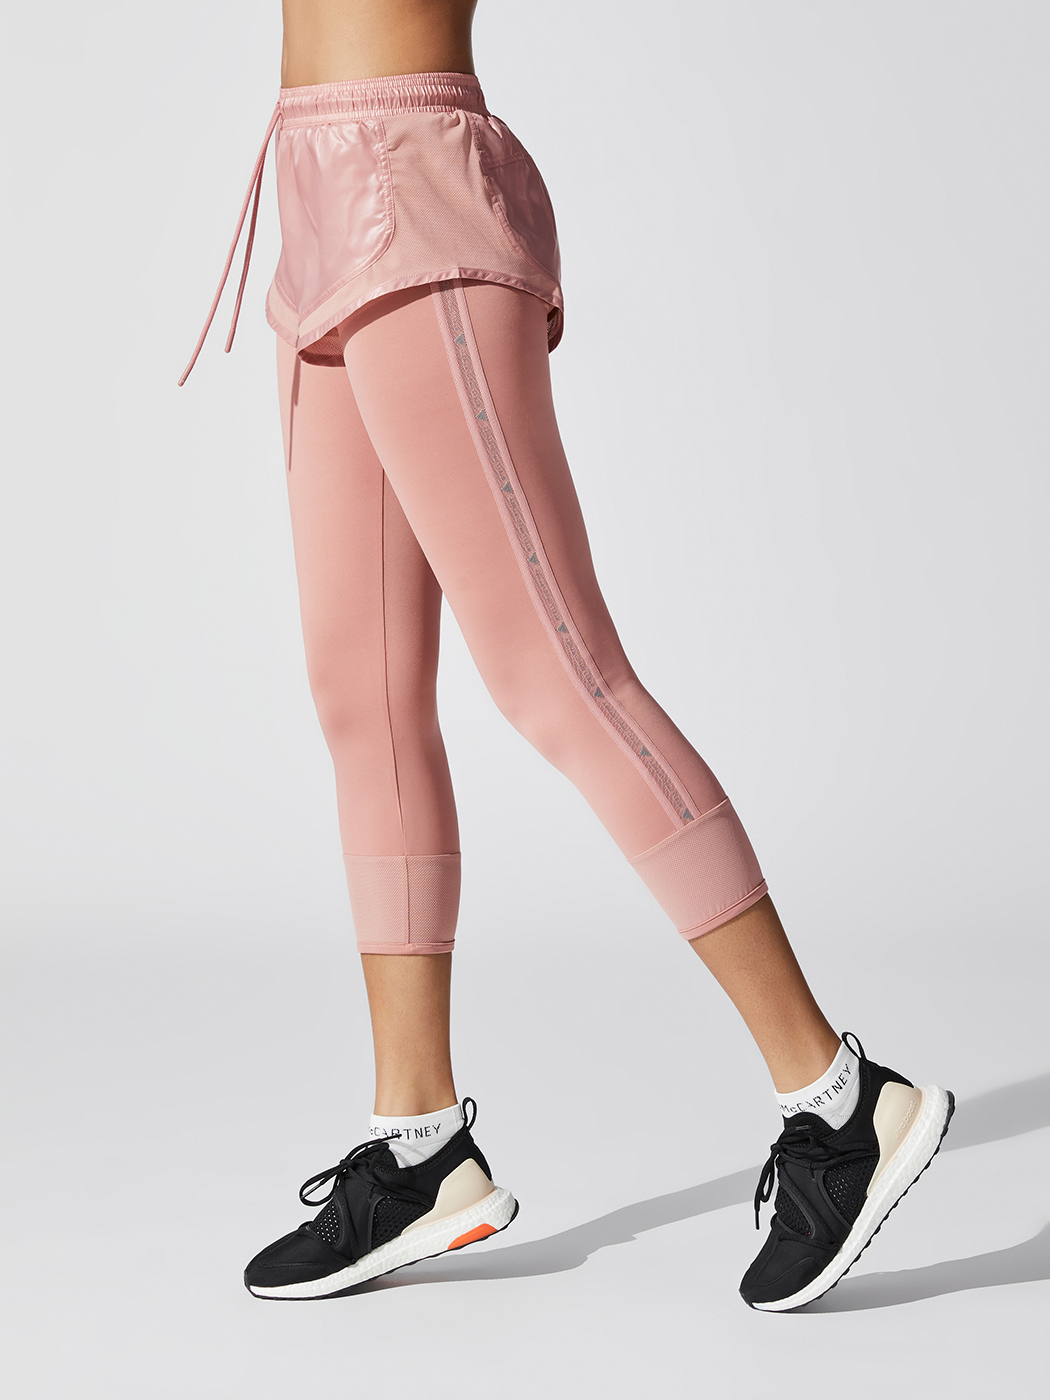 Pink Womens Adidas Stella McCartney Leggings Bottoms Pants Running Fitness Gym